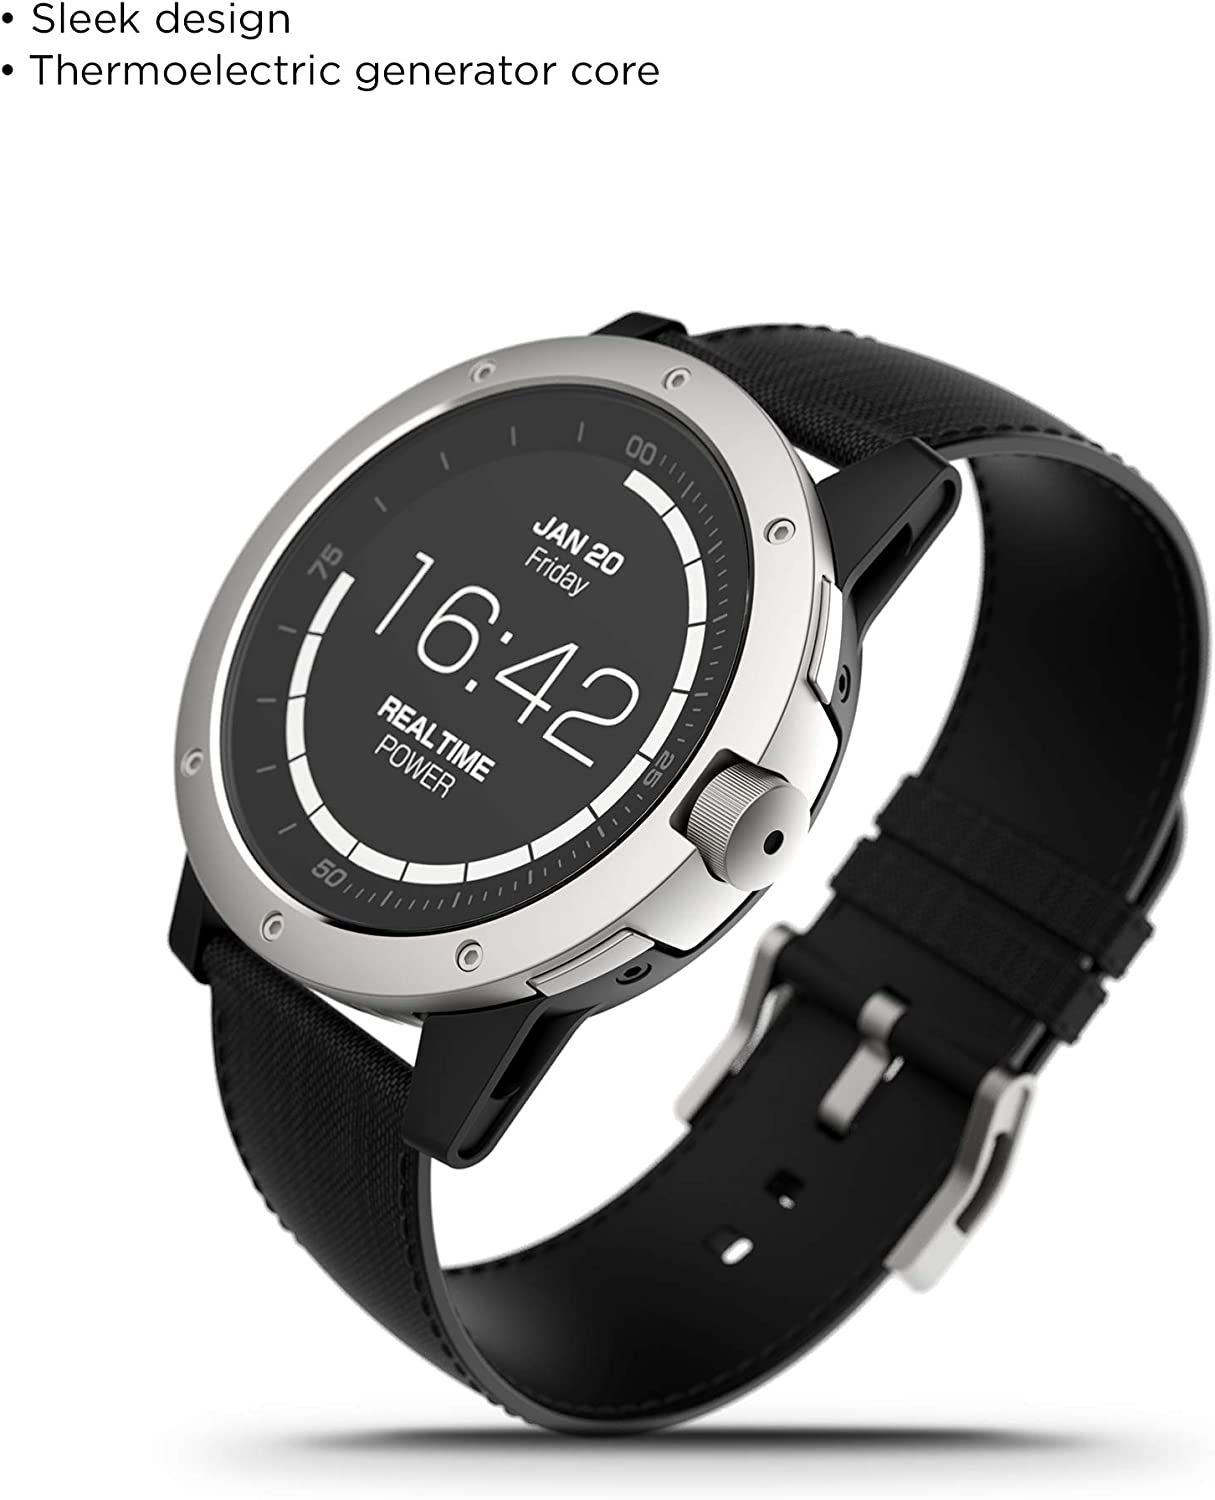 Matrix PowerWatch, Body Heat Powered Fitness Tracker Smart Watch, 50M Dive, Calorie and Step Count, iPhone/Samsung Compatible